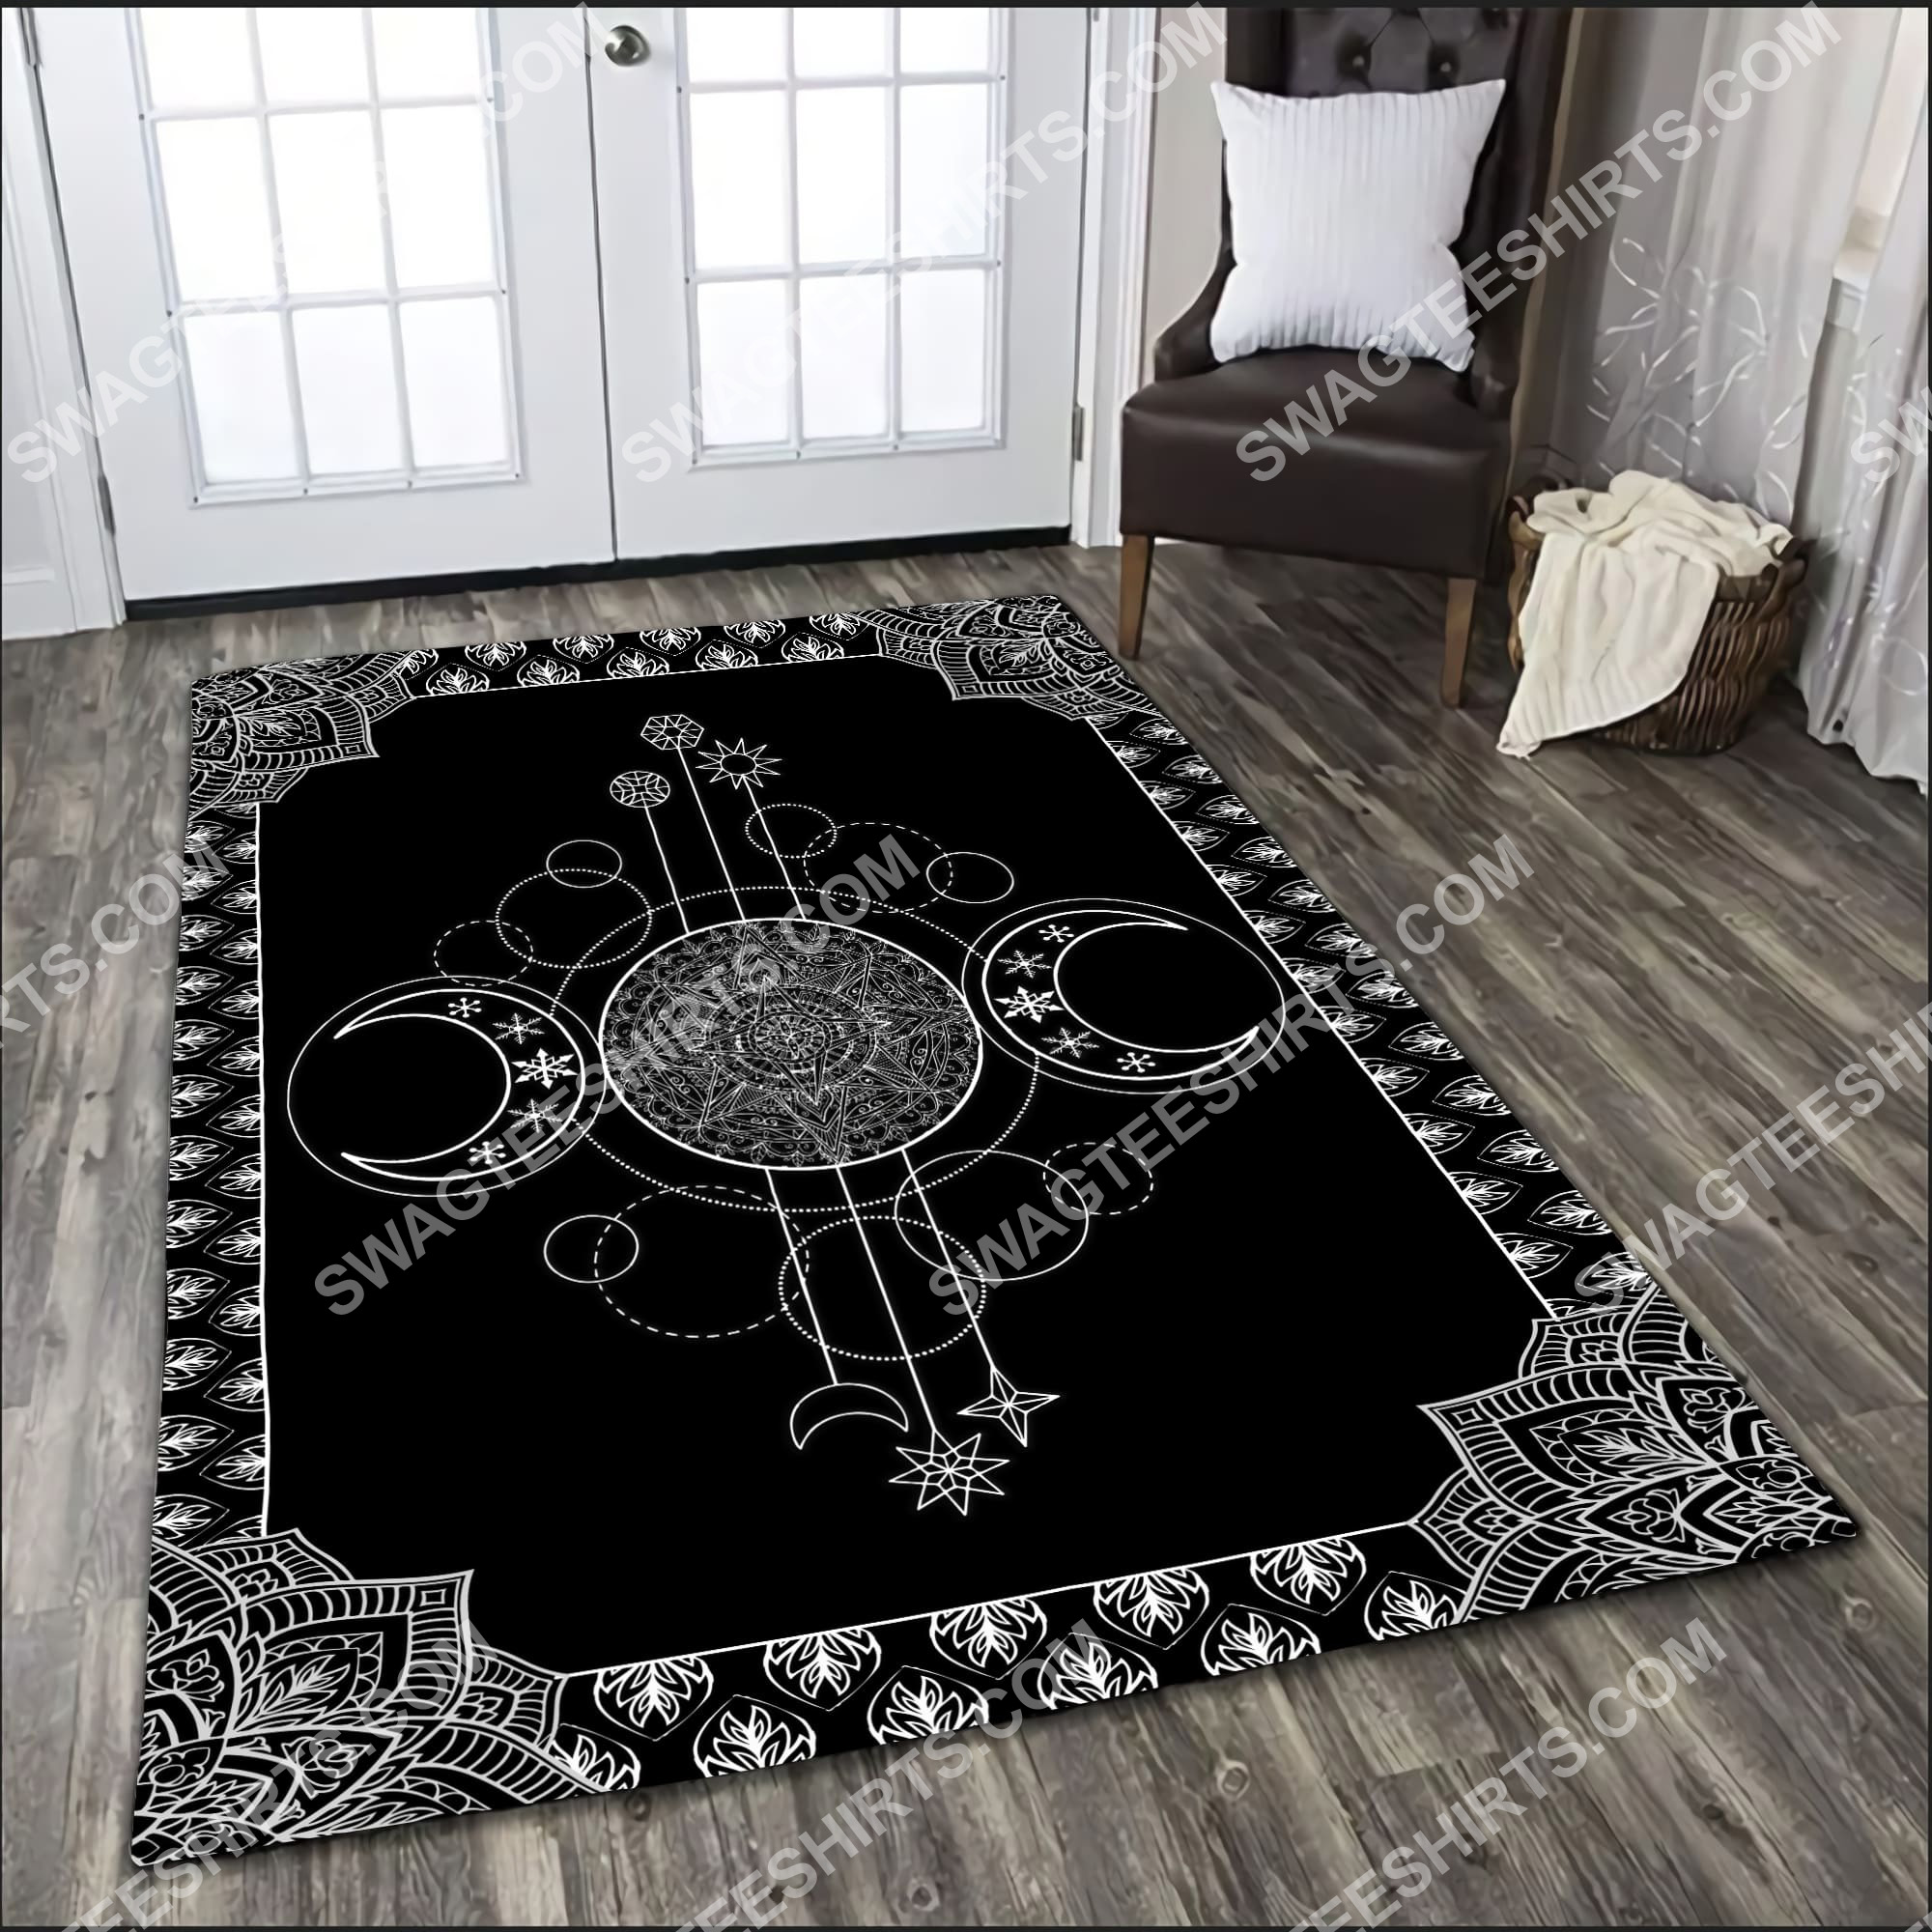 the wiccan art all over printed rug 4(1)